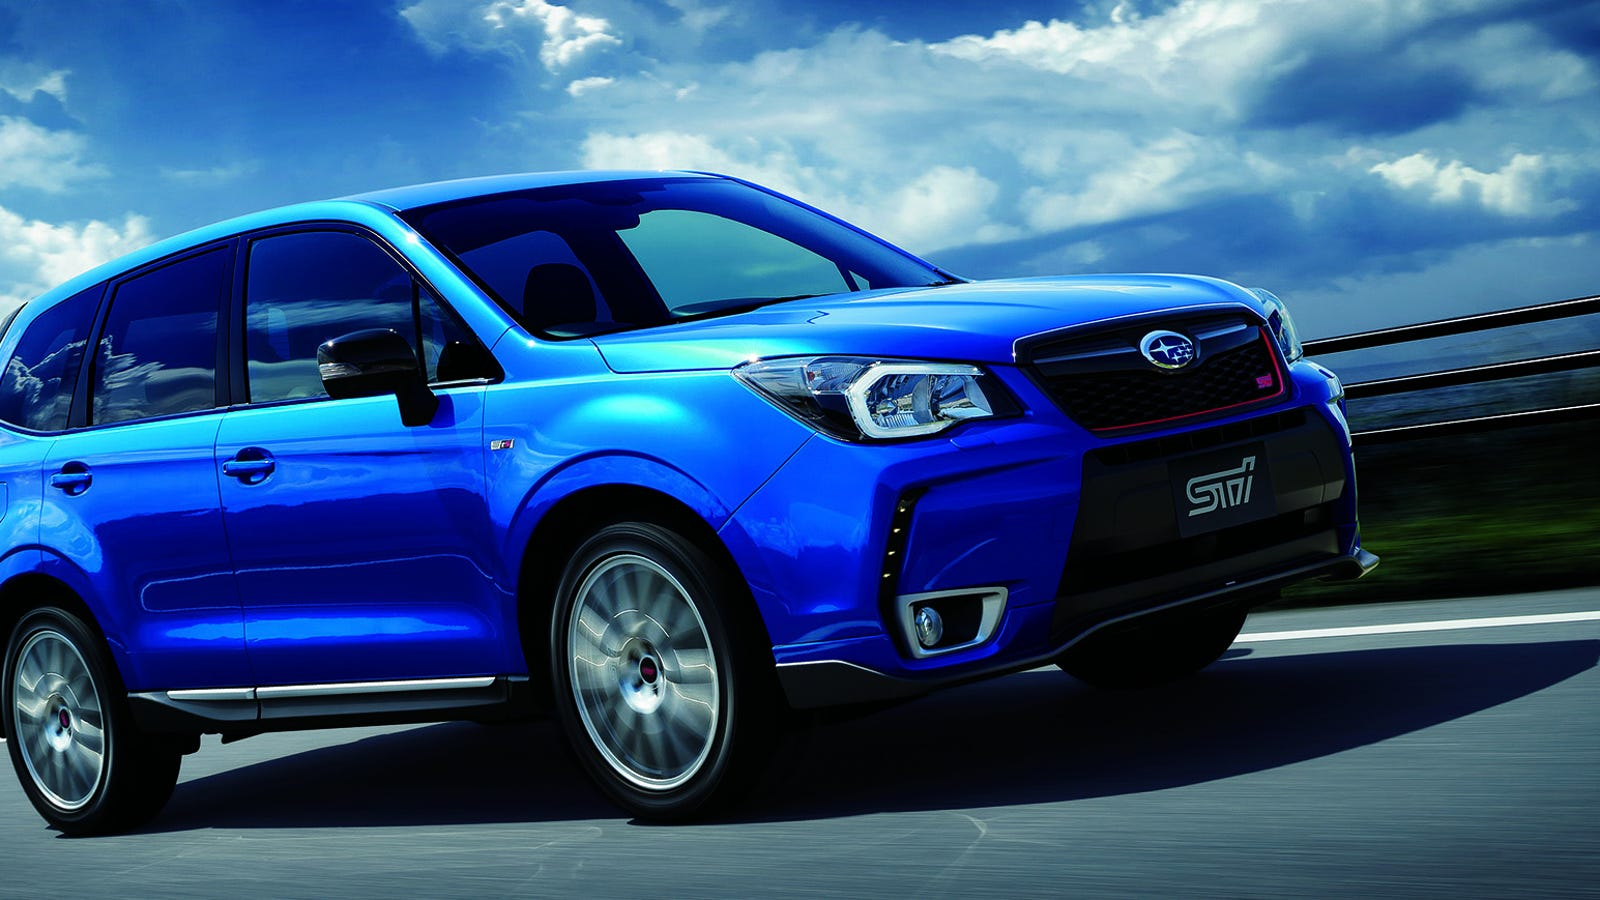 Subaru 2015 subaru forester specs : The 2015 Subaru Forester tS Is The Hottest-Looking Kid Hauler In Japan